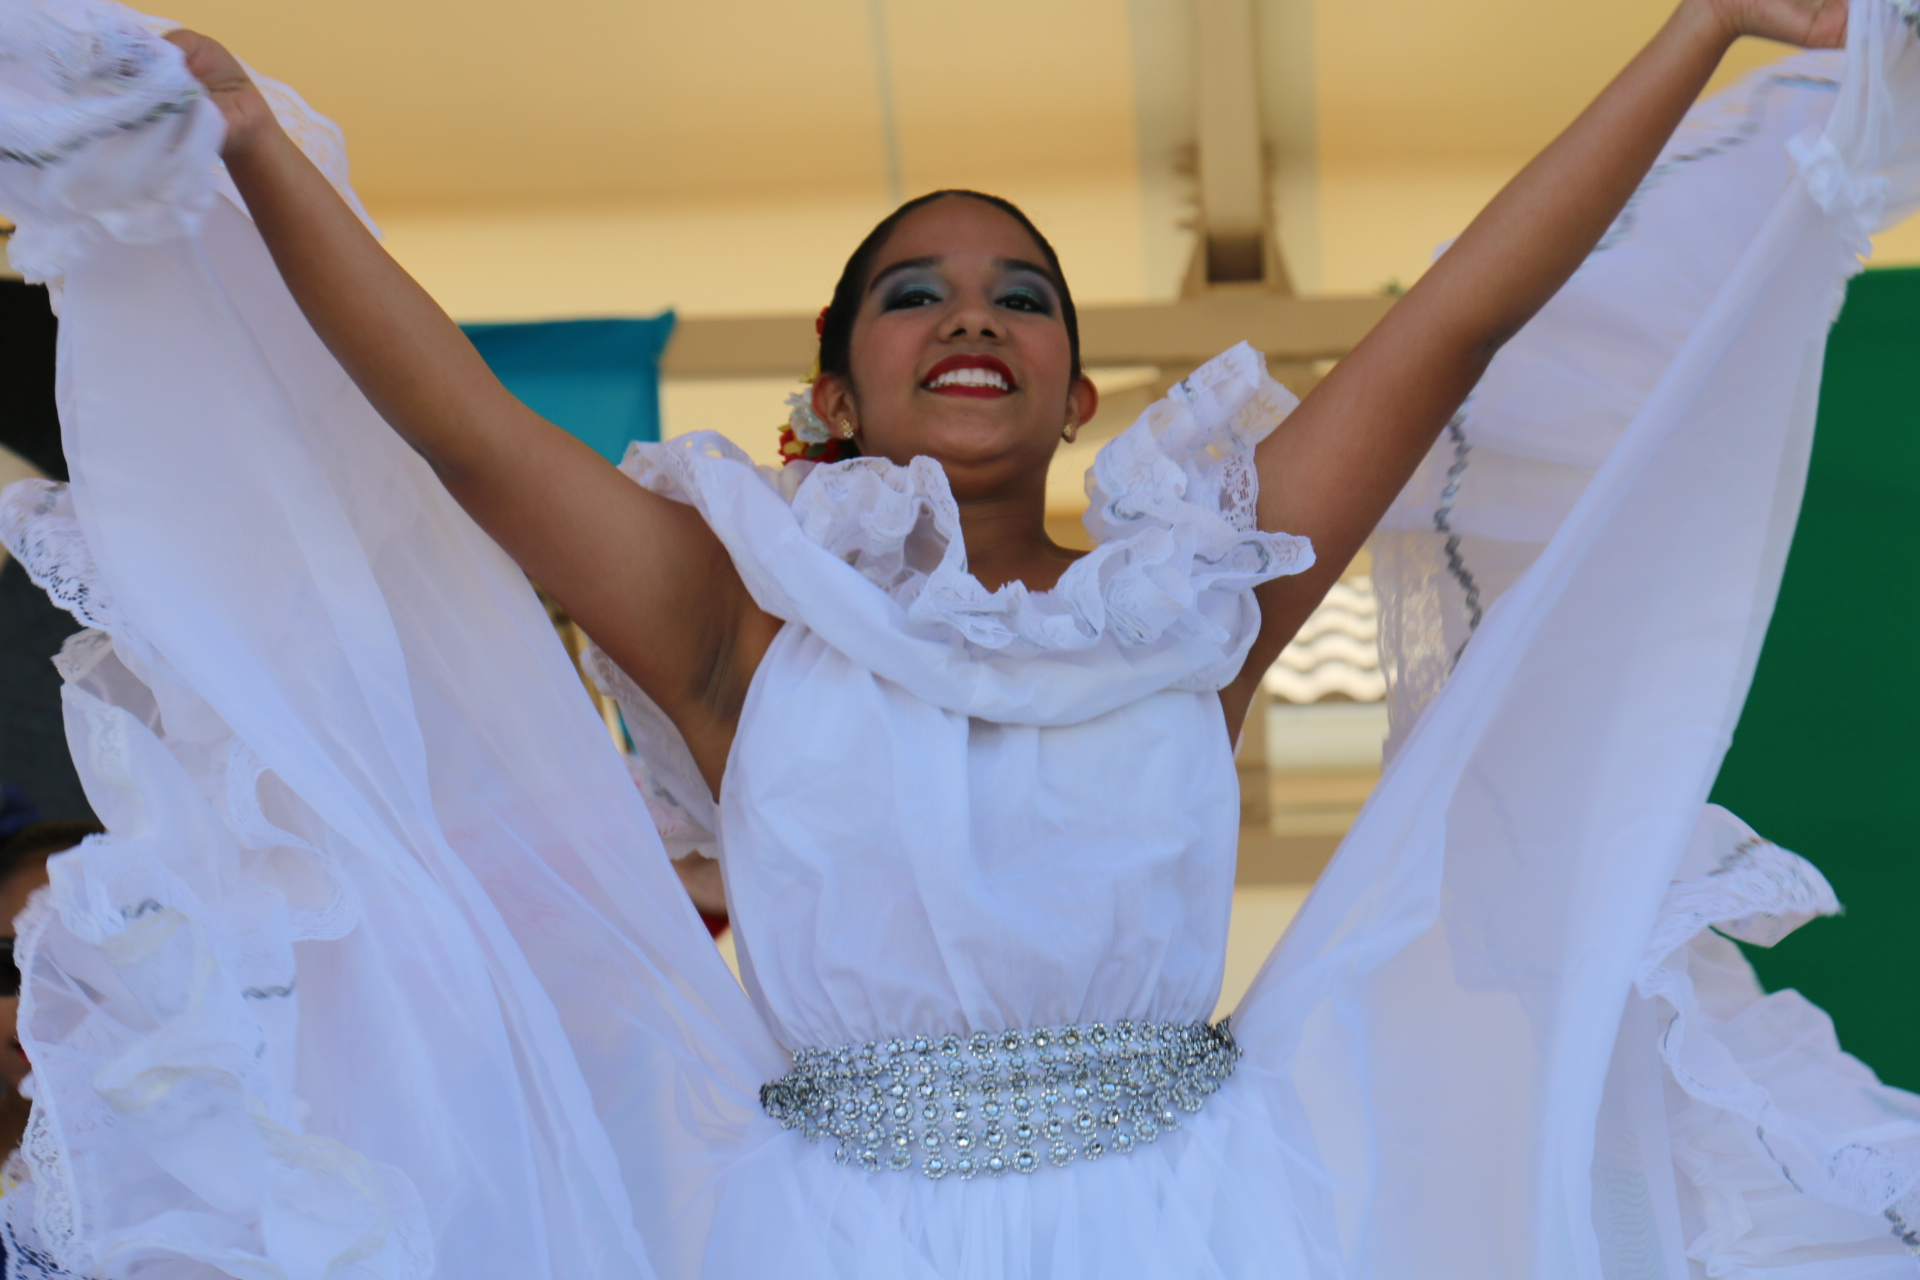 one female dancer in white dress holding up sides